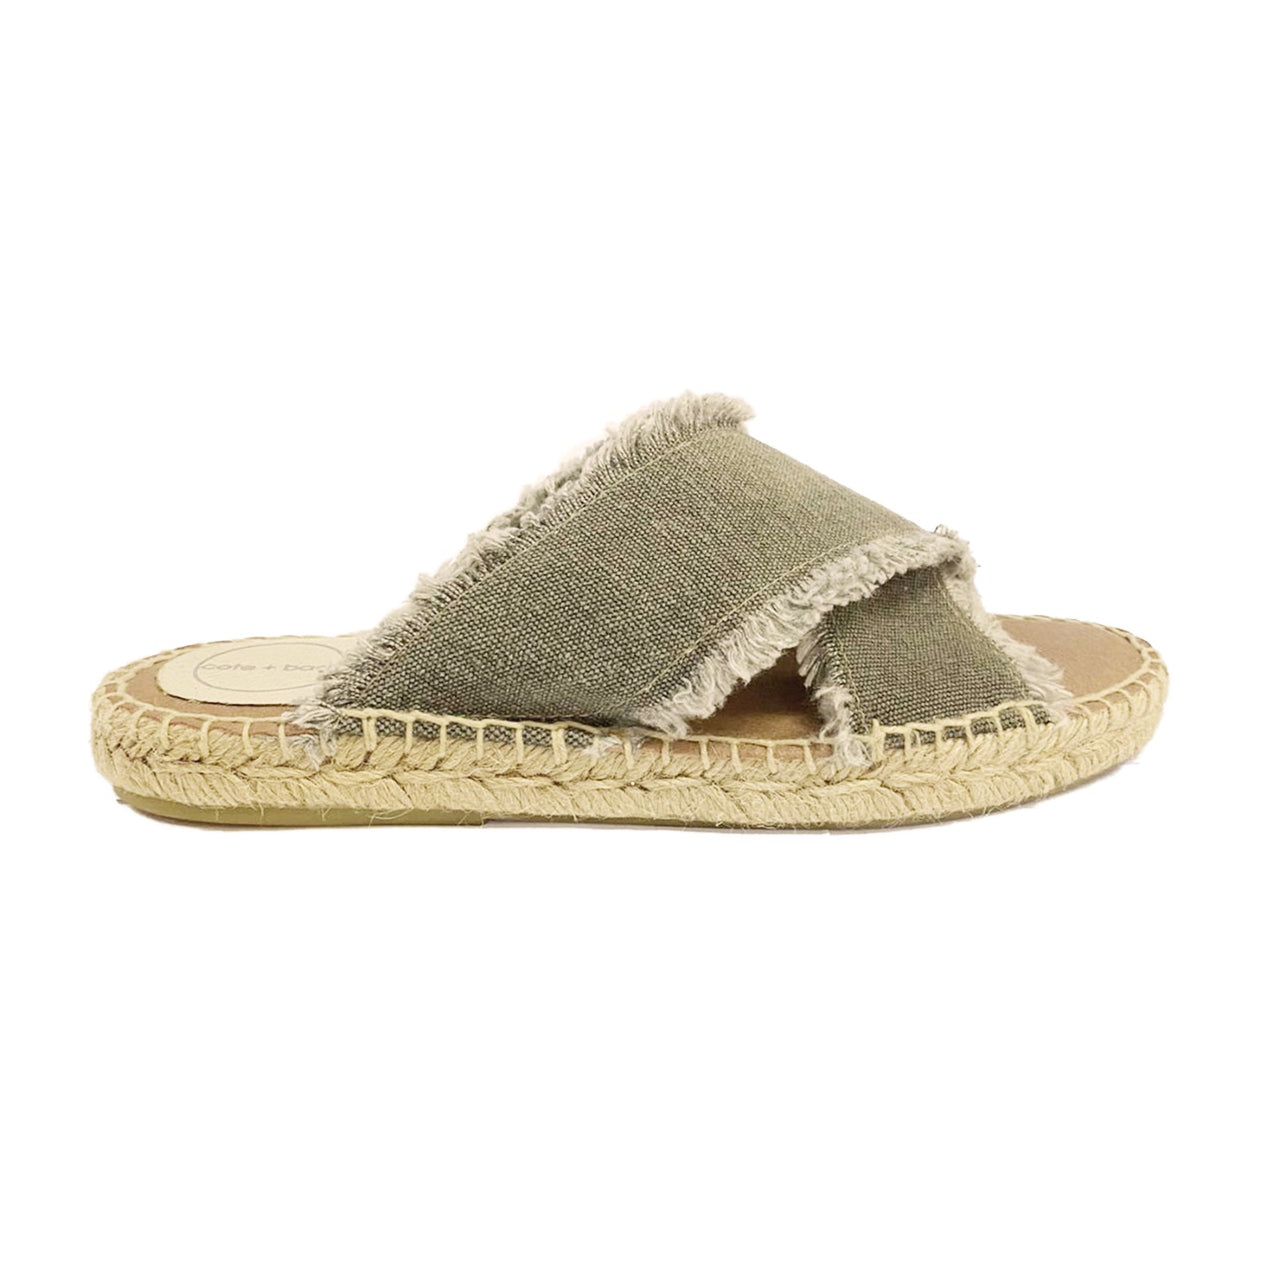 AGATTA Charcoal espadrilles - Badt and Co - singapore